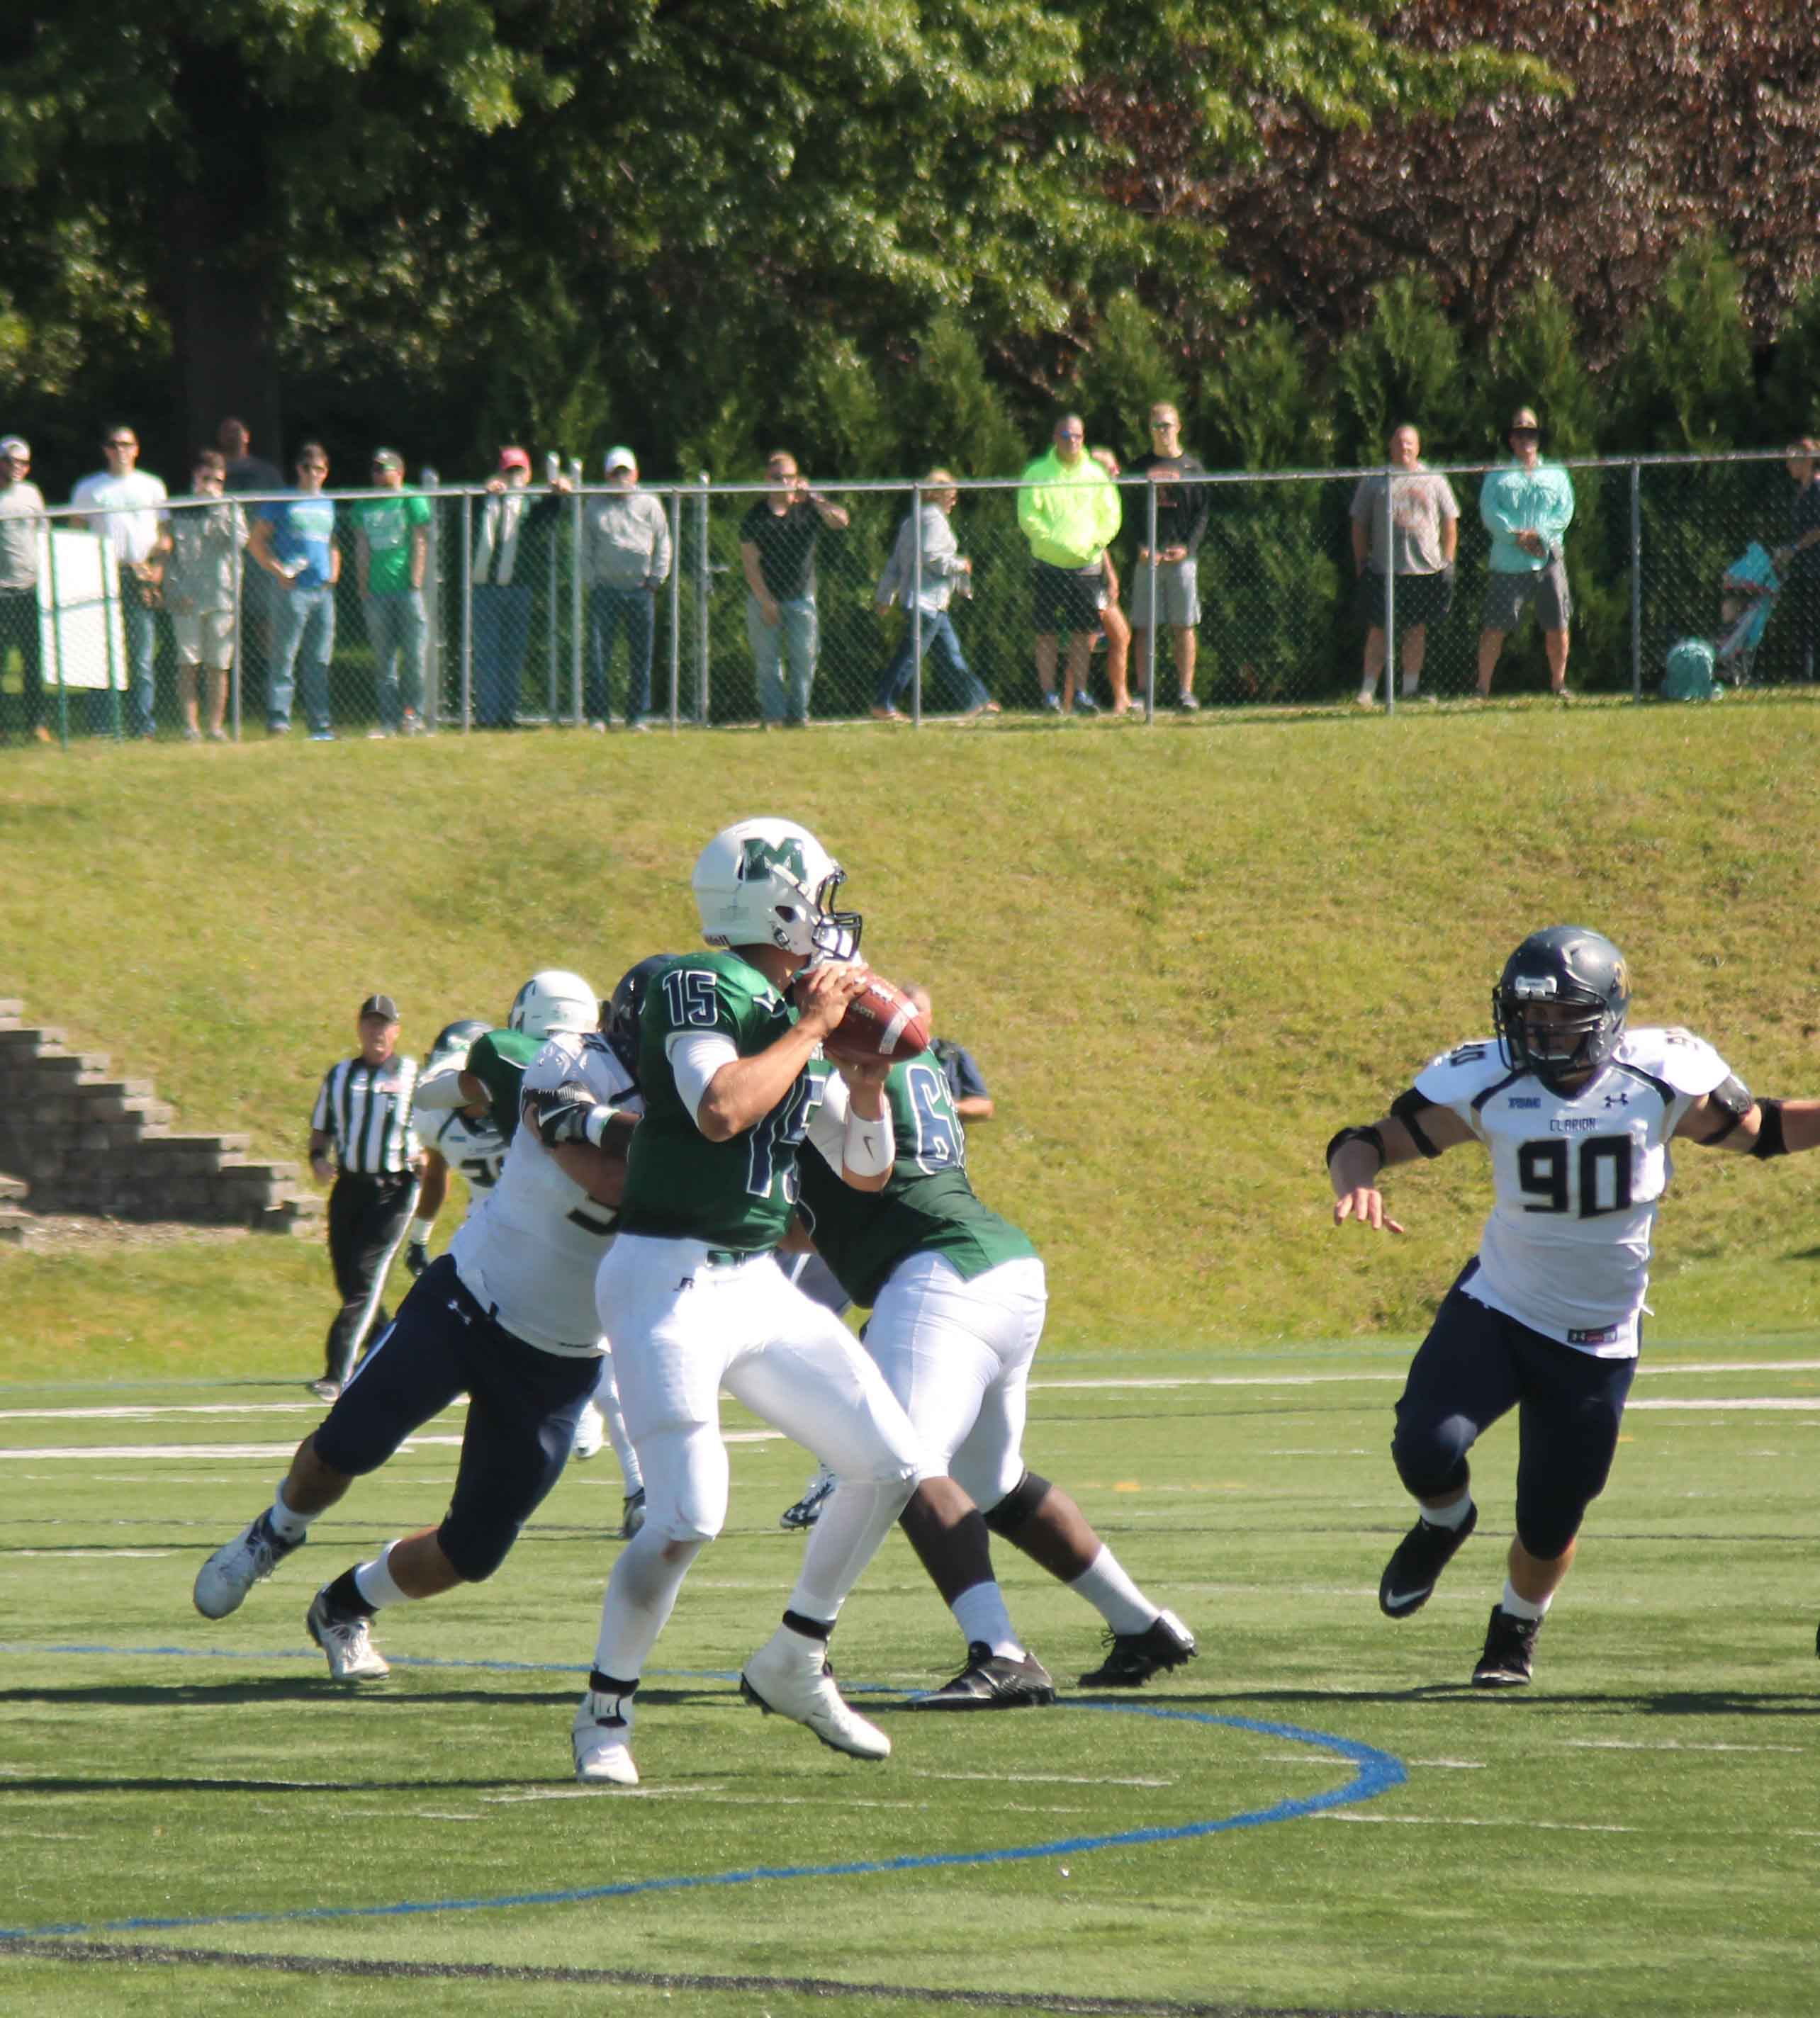 Quarterback Doug Altavilla threw a 19-yard touchdown pass to wide receiver Brad Novak in the fourth quarter, but it was not enough to put Mercyhurst over Clarion. The Lakers lost 35-34.